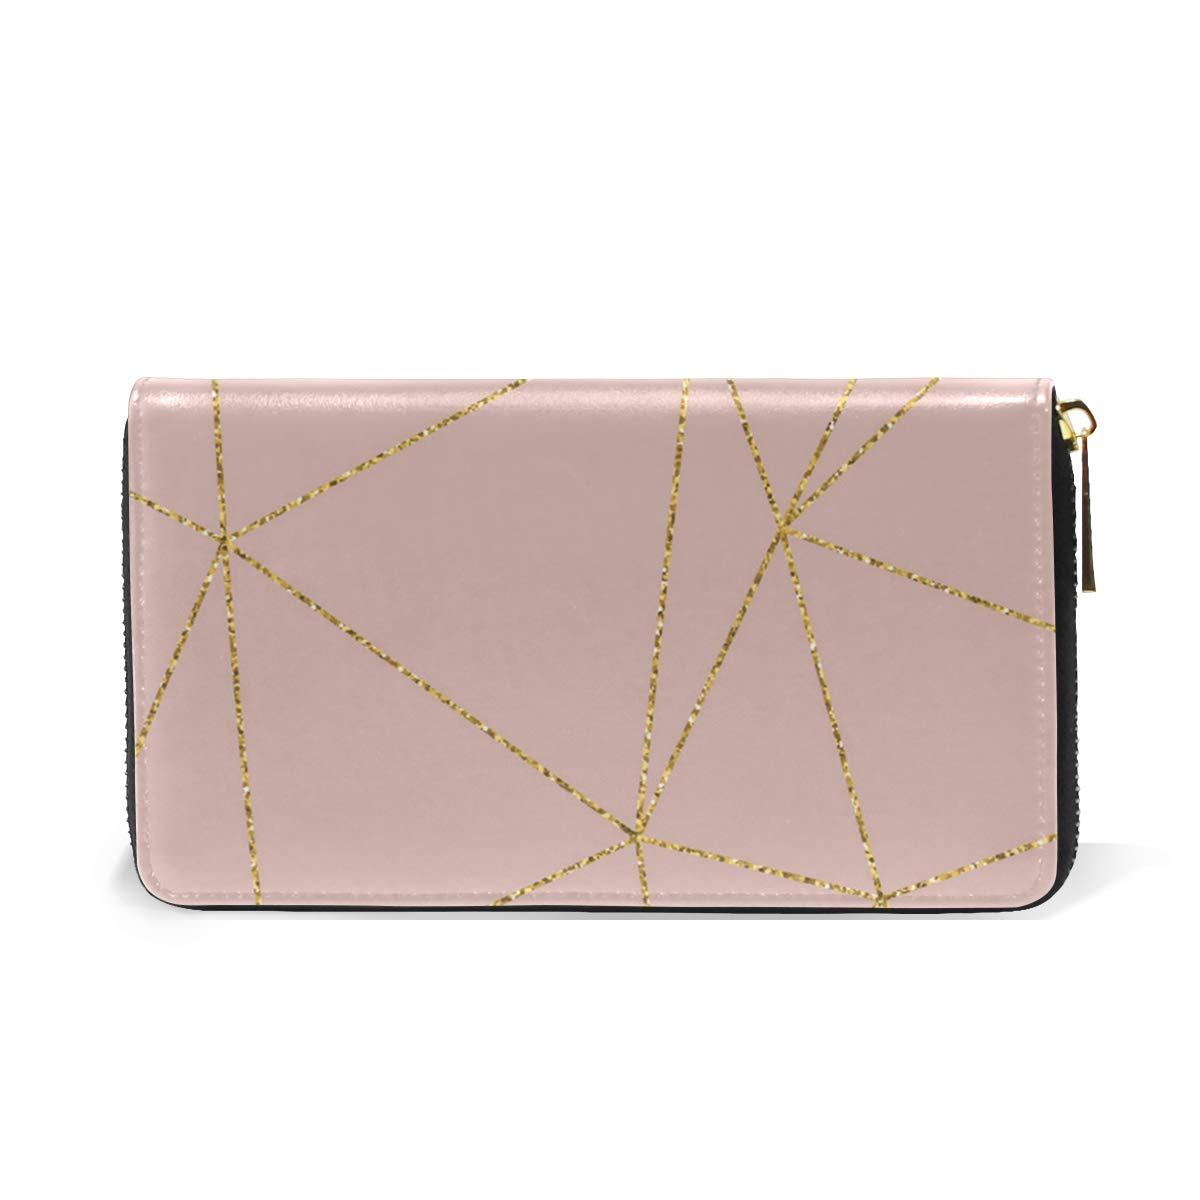 Rose Is Very Noble Real Leather Zip Around Wallet Wristlet minimalist wallet Travel Purse Wristlet